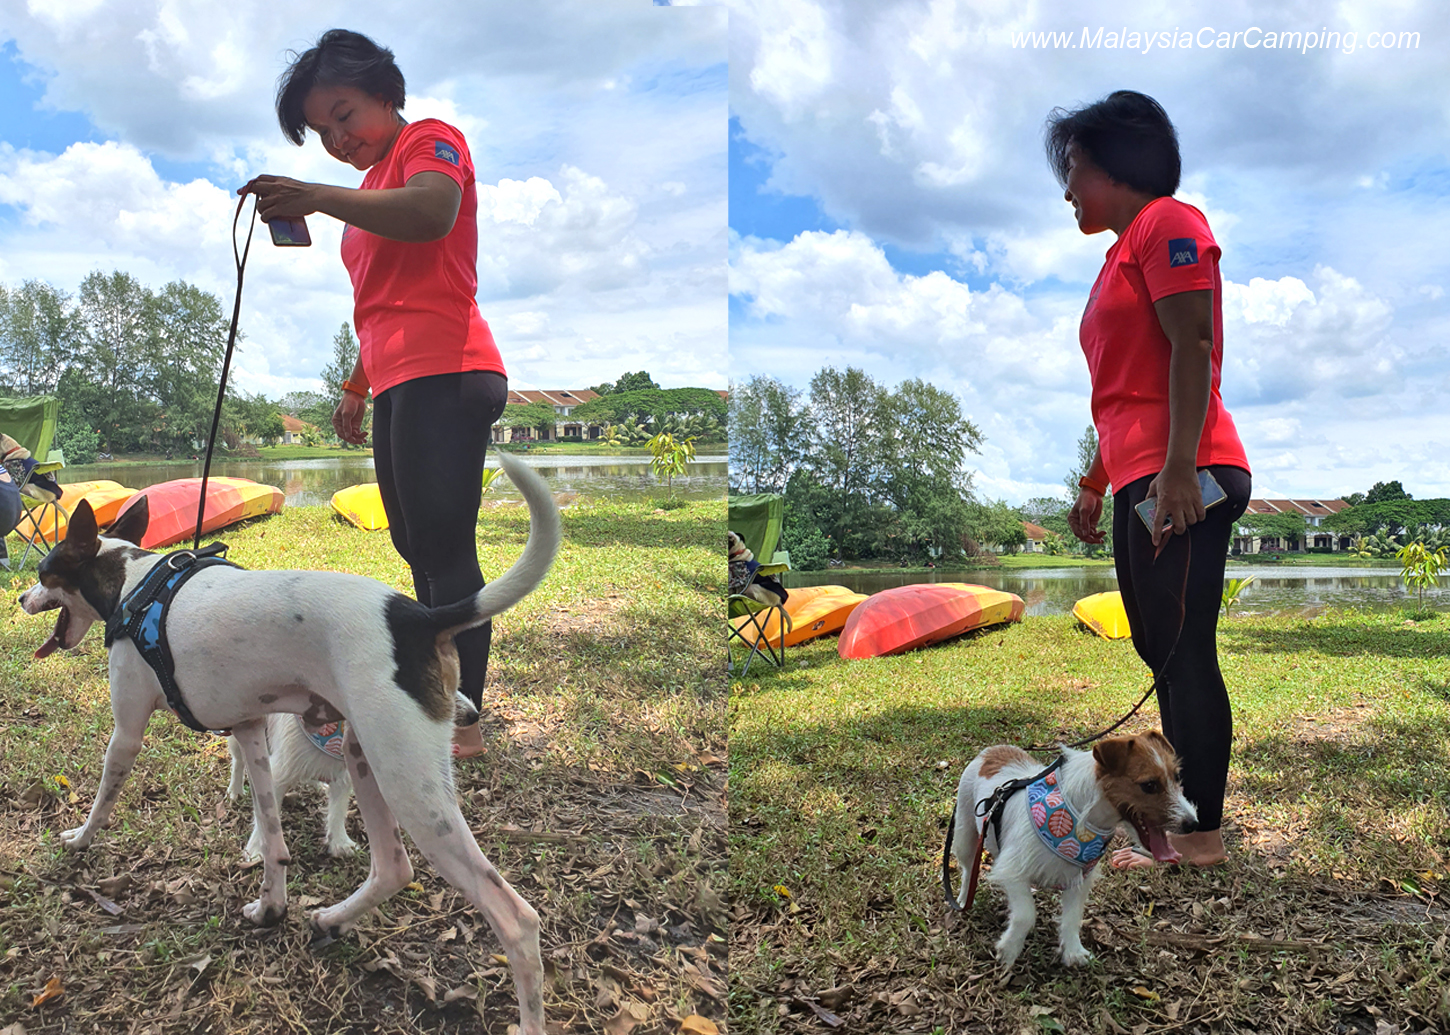 camping_with_dogs_puppy_lakeside_camping_malaysia_car_camping_malaysia_campsite-10